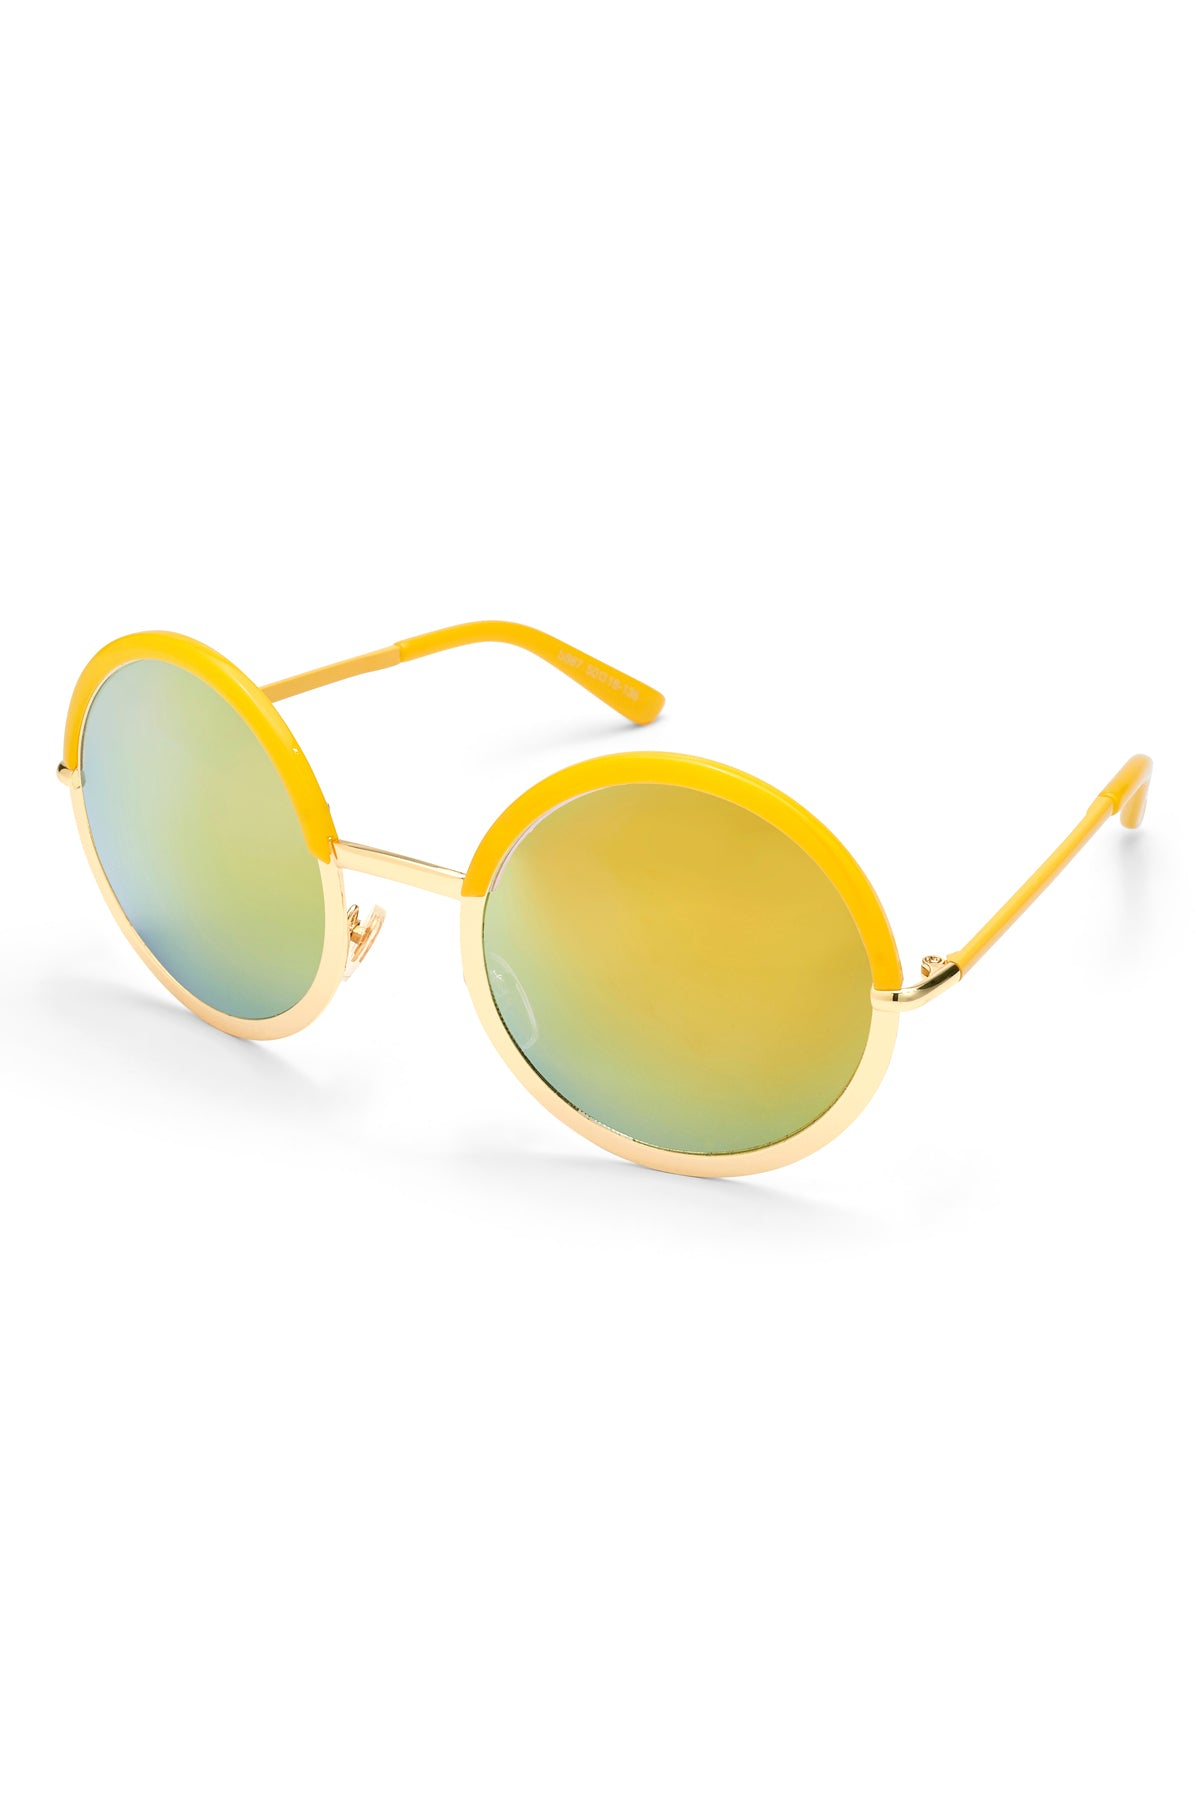 Mellow Yellow Sunnies